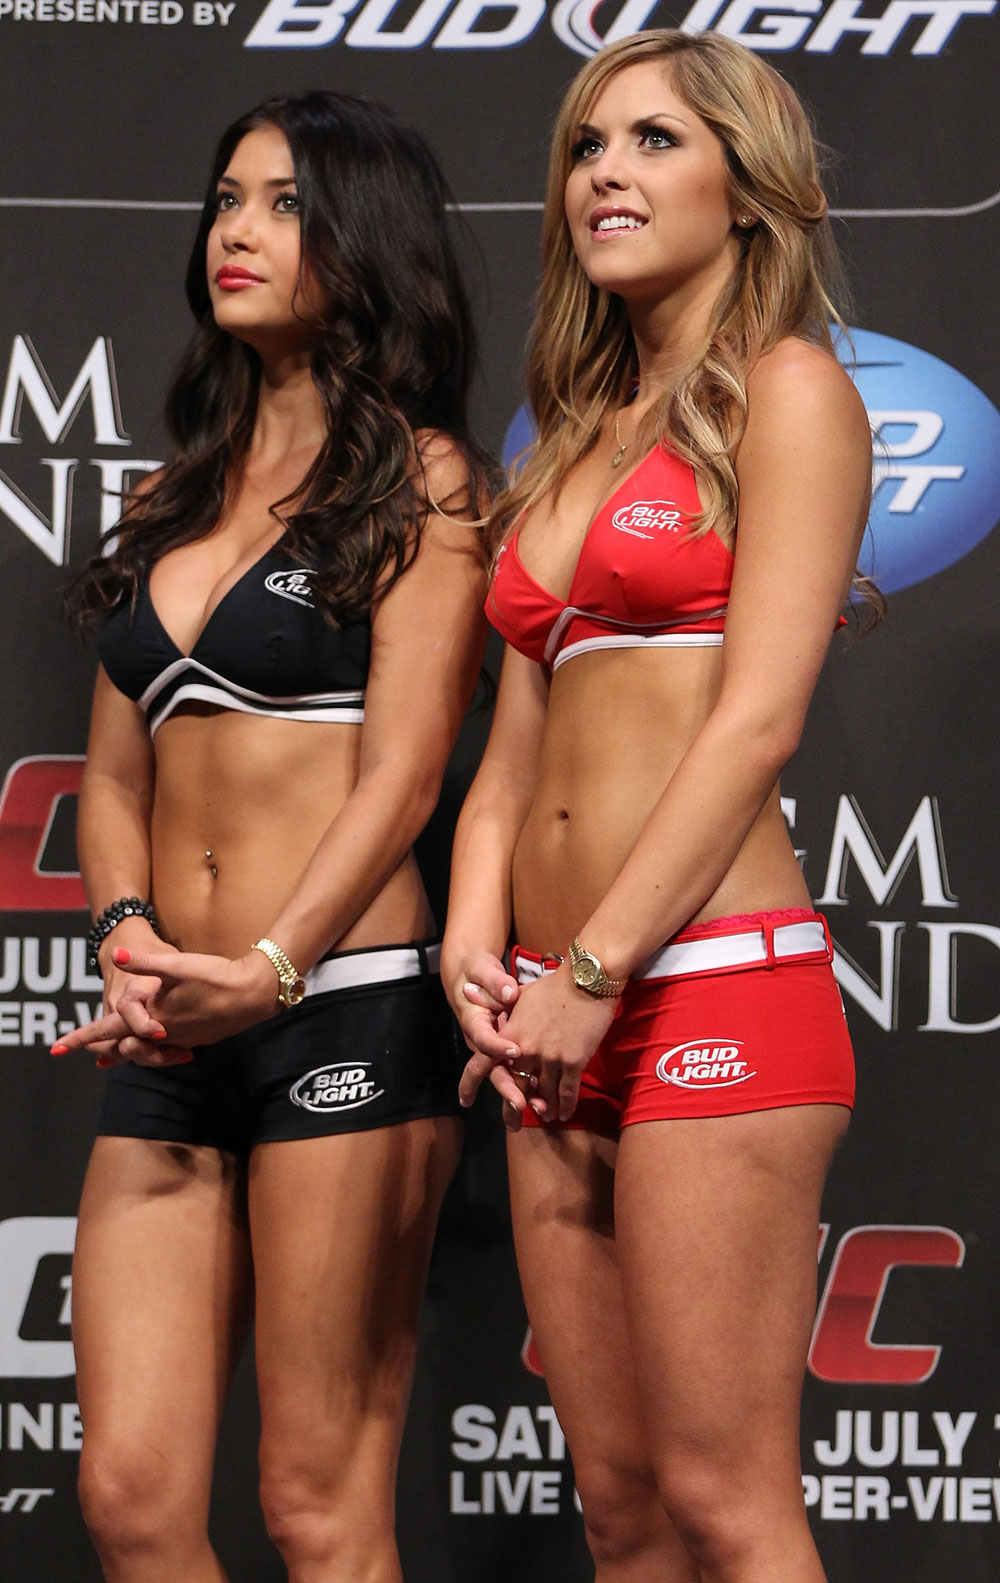 LAS VEGAS, NV - JULY 6:   (R-L) UFC Octagon Girls Brittney Palmer and Arianny Celeste stand on stage during the UFC 148 Weigh In at the Mandalay Bay Events Center on July 6, 2012 in Las Vegas, Nevada.  (Photo by Josh Hedges/Zuffa LLC/Zuffa LLC via Getty Images)